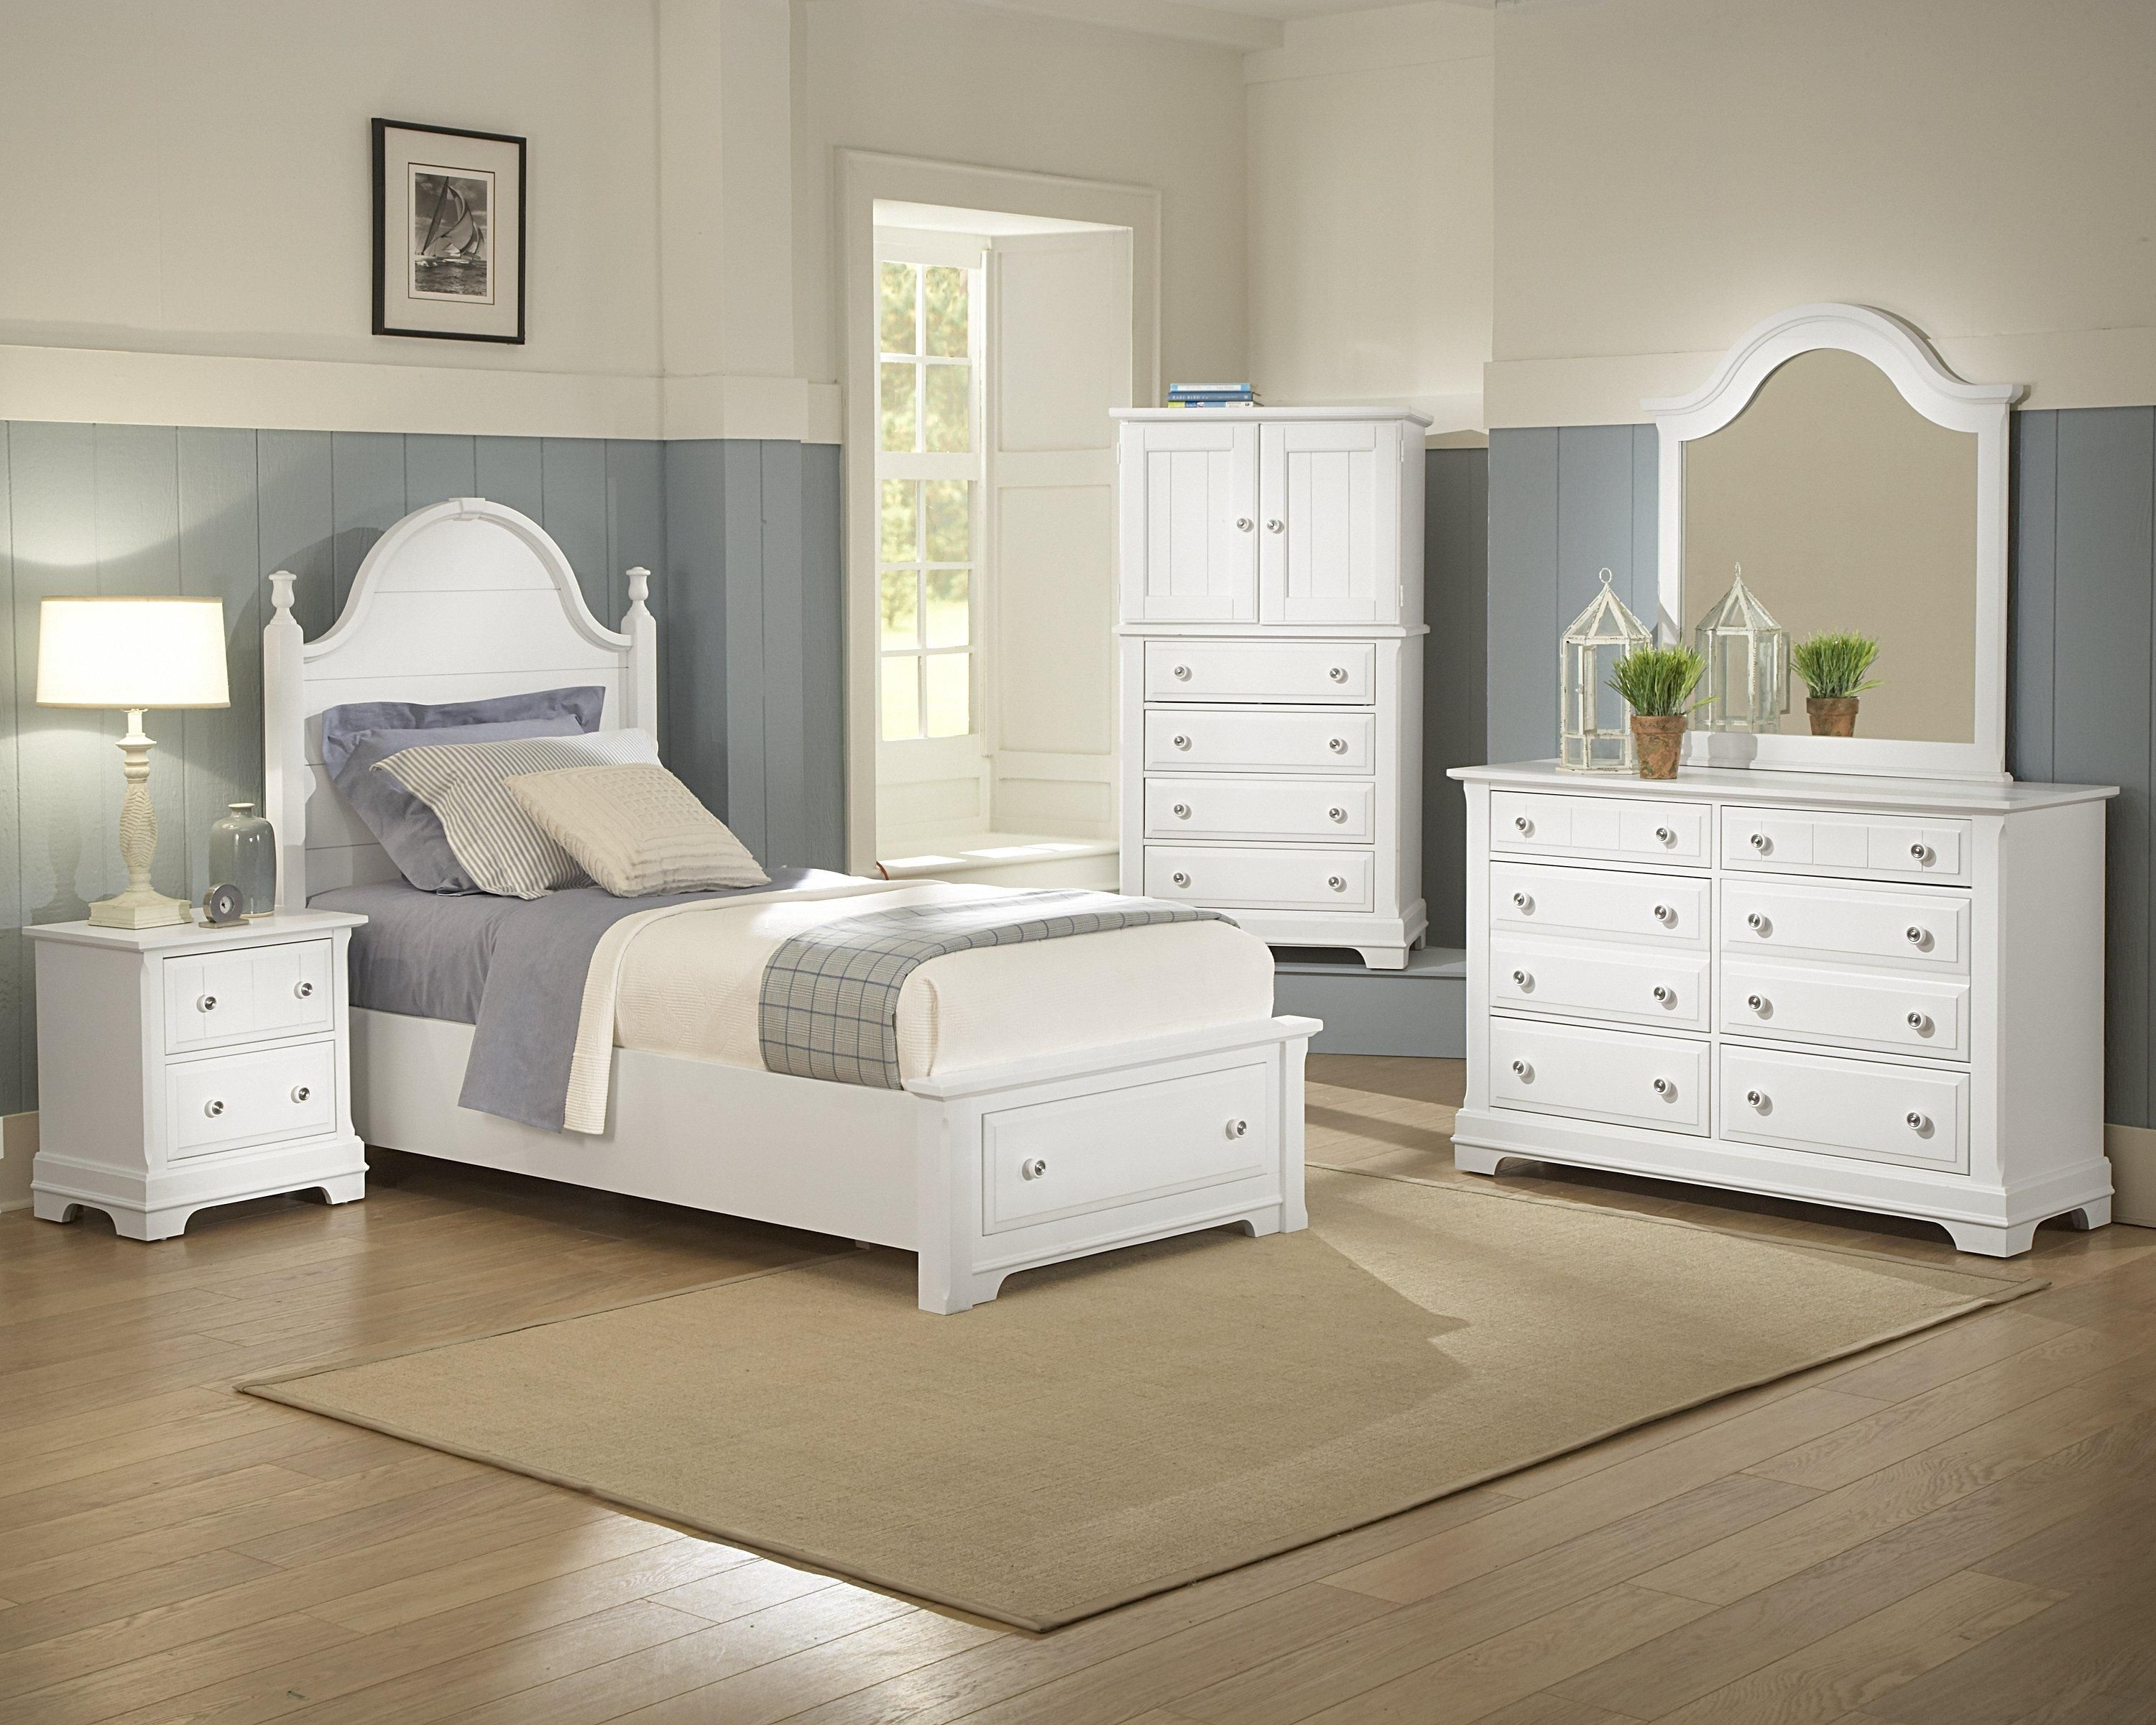 Vaughn Bassett Furniture Cottage Collection Featuring Panel Storage Bed Night Stand Vanity